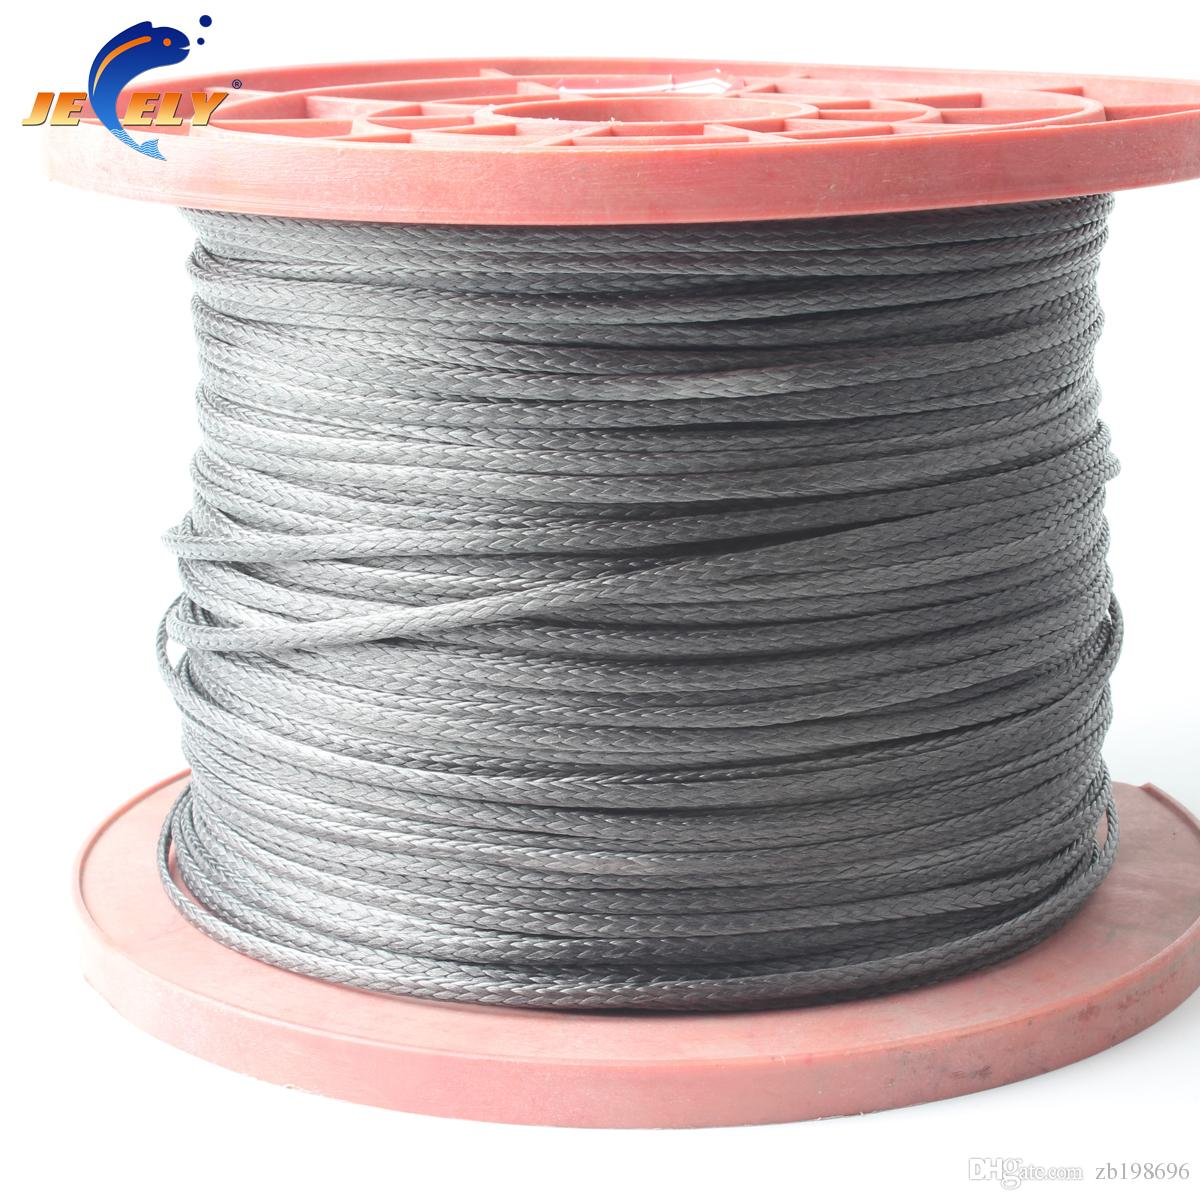 463LBS 1.5mm Hollow Braid Kitesurfing Kitelines 8 Strands 50M UHMWPE ...